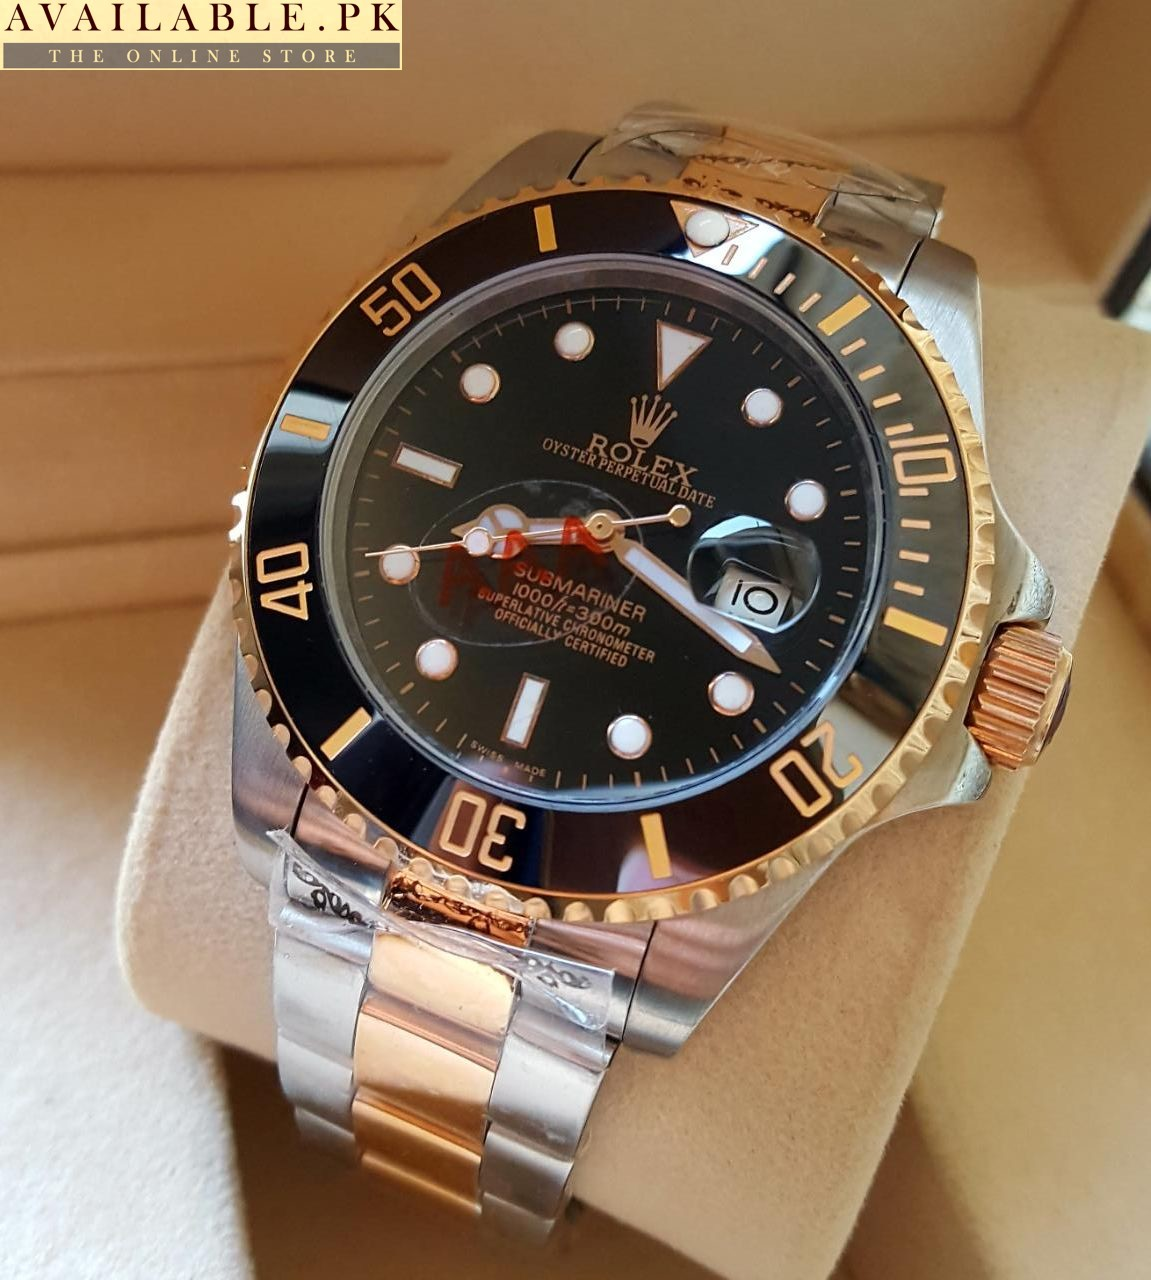 Rolex Submariner Gmt Master 2 Black Dial Watch Available Pk